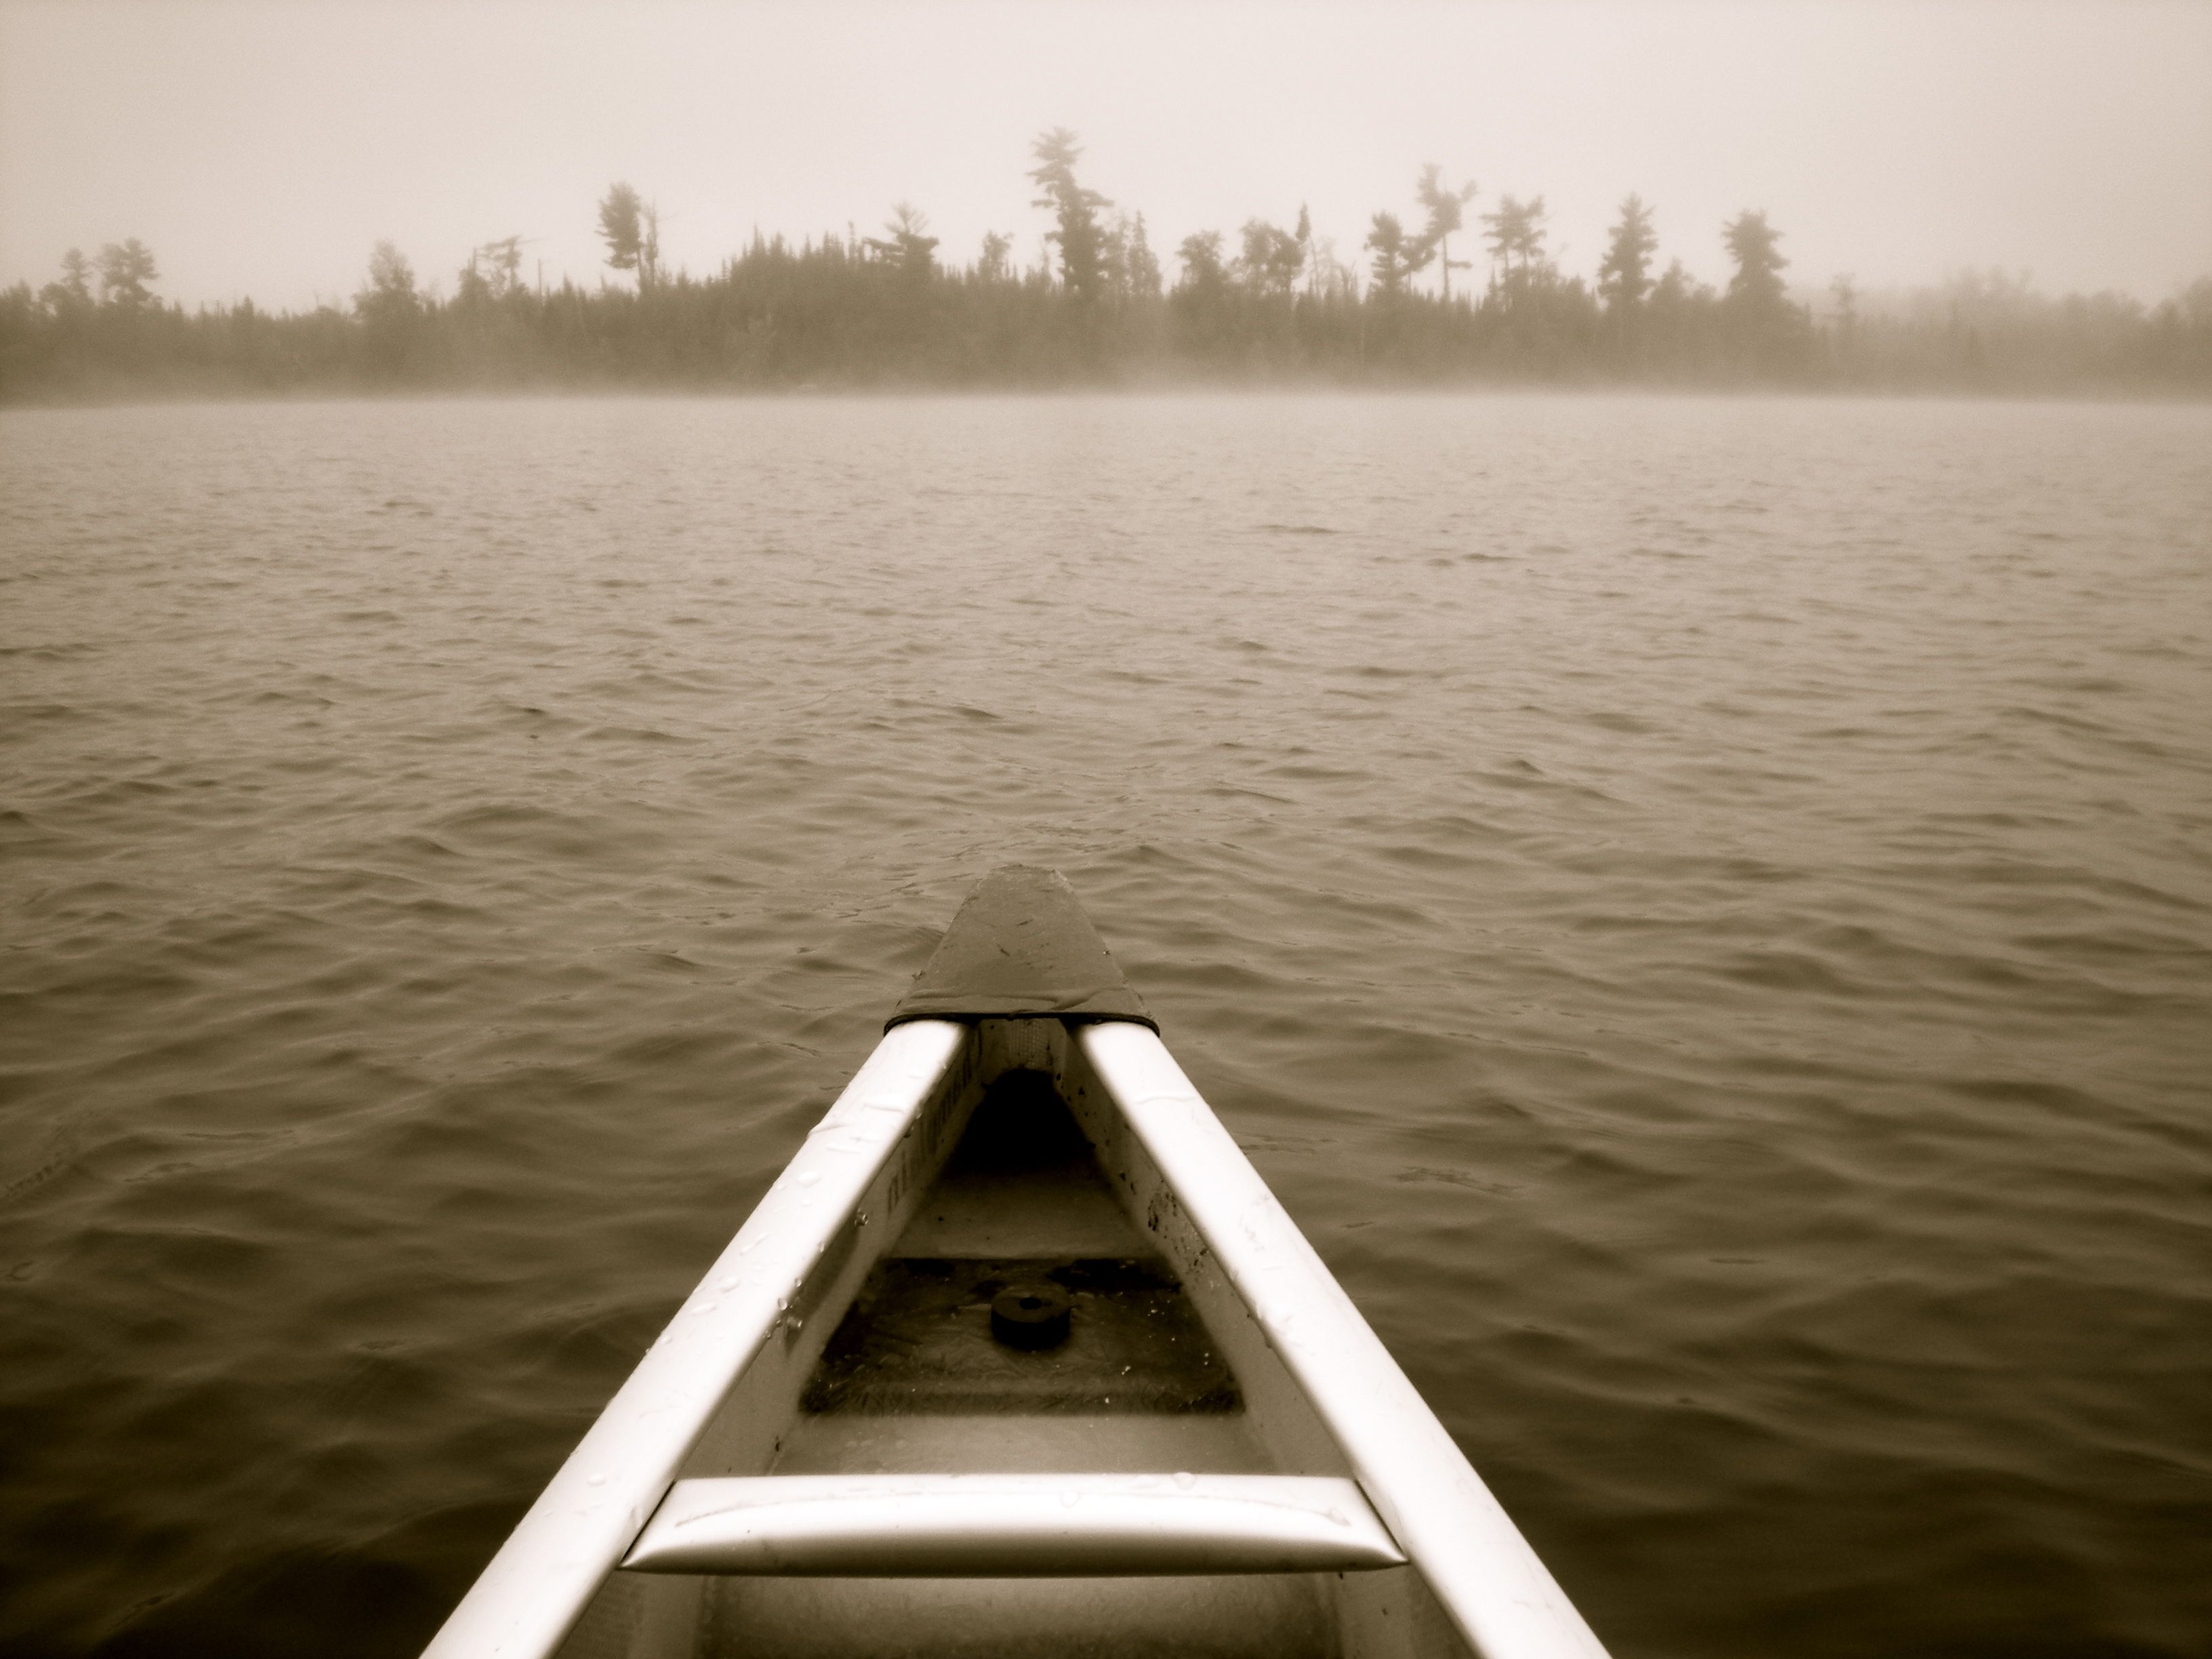 I took this photo in the BWCA in Ely, MN.